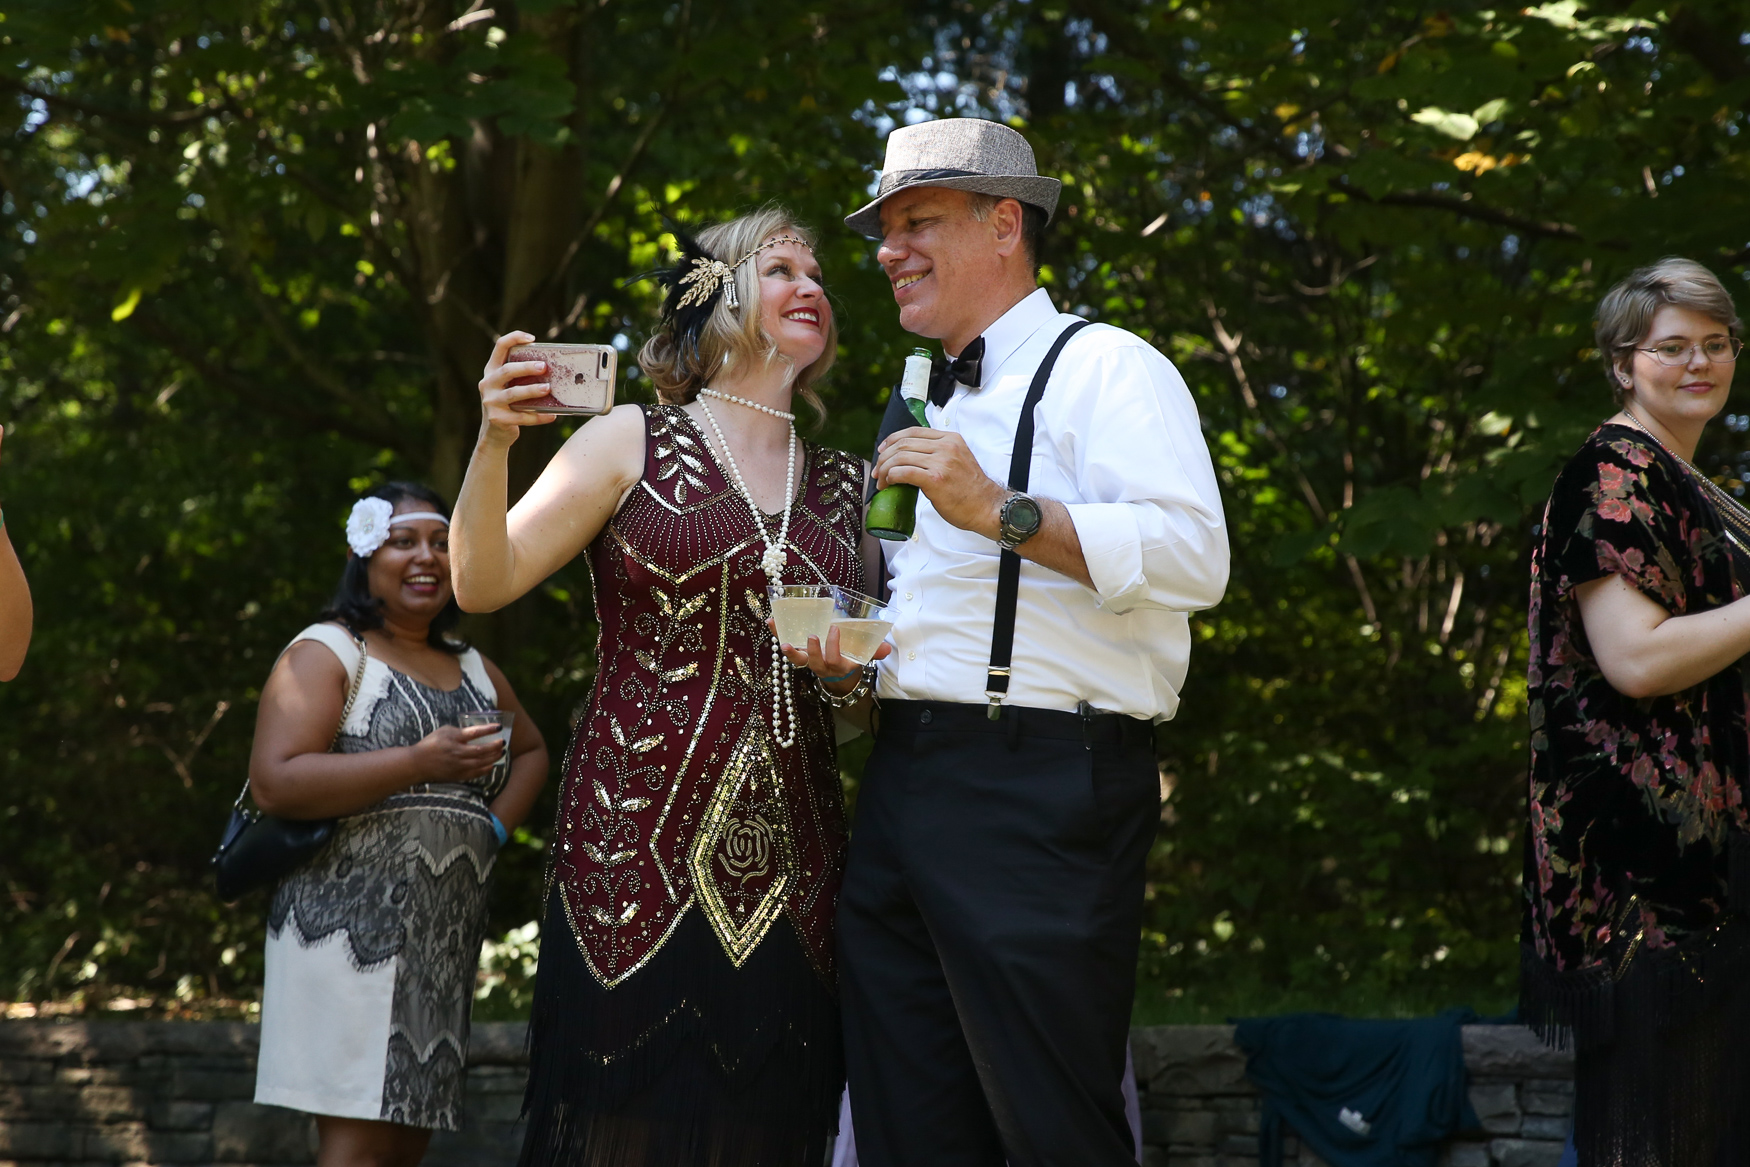 The Washington National Cathedral came to life with a blast from the past this weekend as Dardanella hosted its bi-annual Great Gatsby picnic. Guest dressed up in period costumes and enjoyed period music, popular games of the era and danced like it was 1925. (Amanda Andrade-Rhoades/DC Refined)